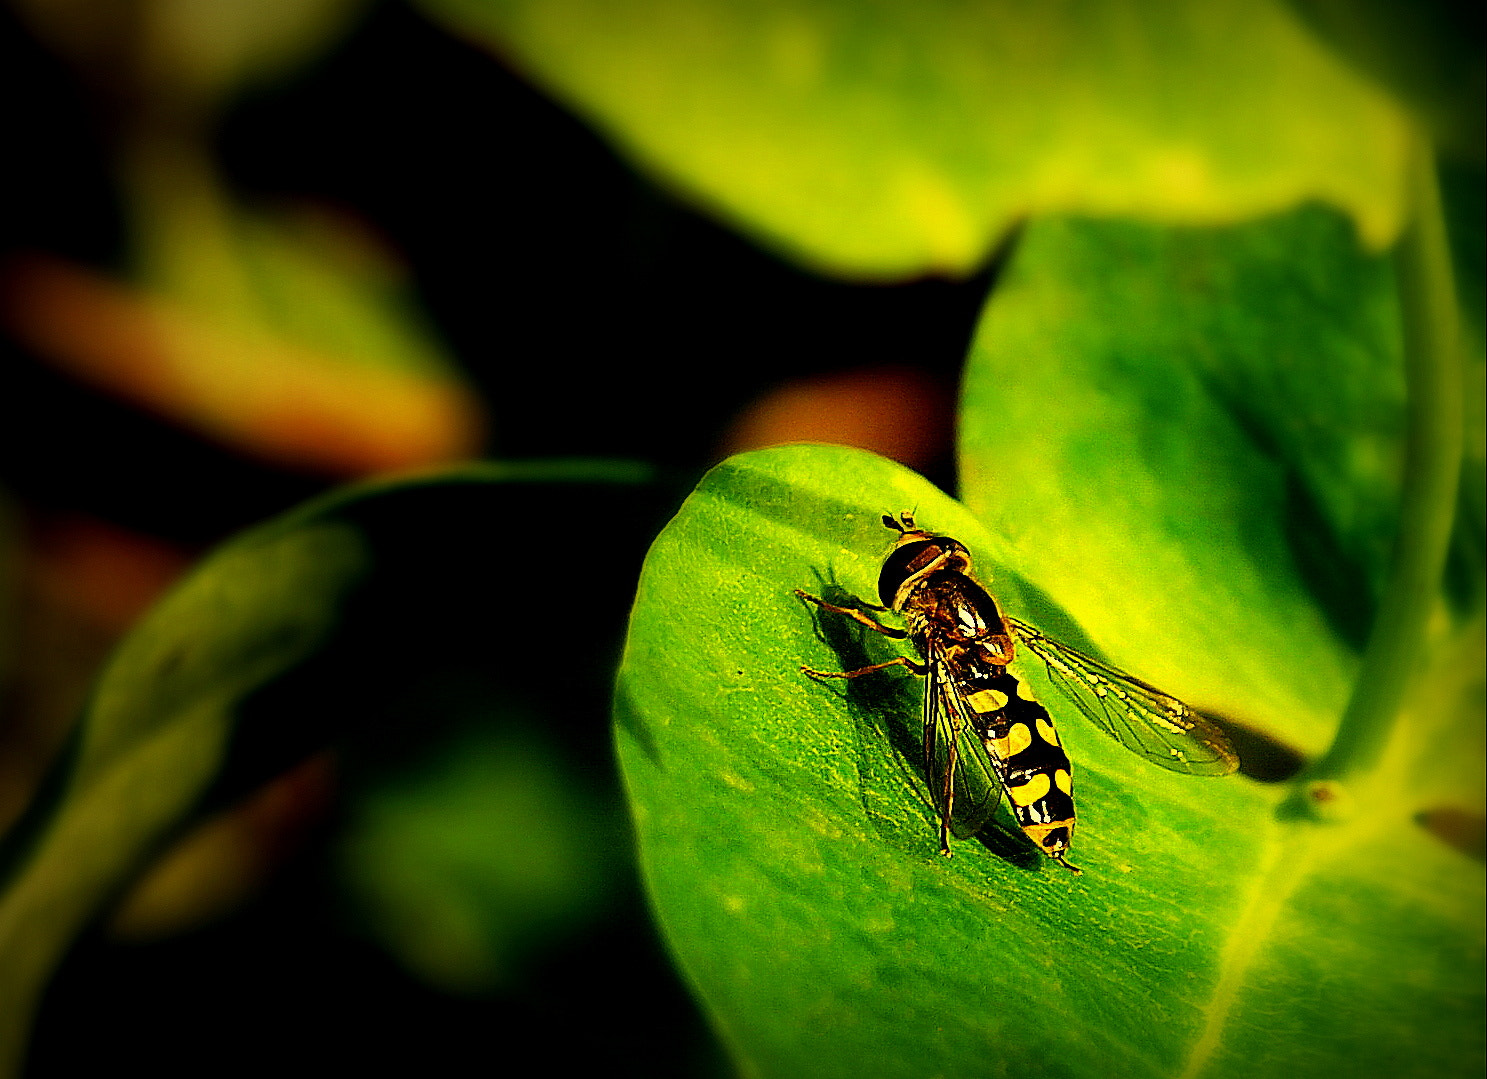 Photograph Hoverfly on leaf by Sara Daniella on 500px